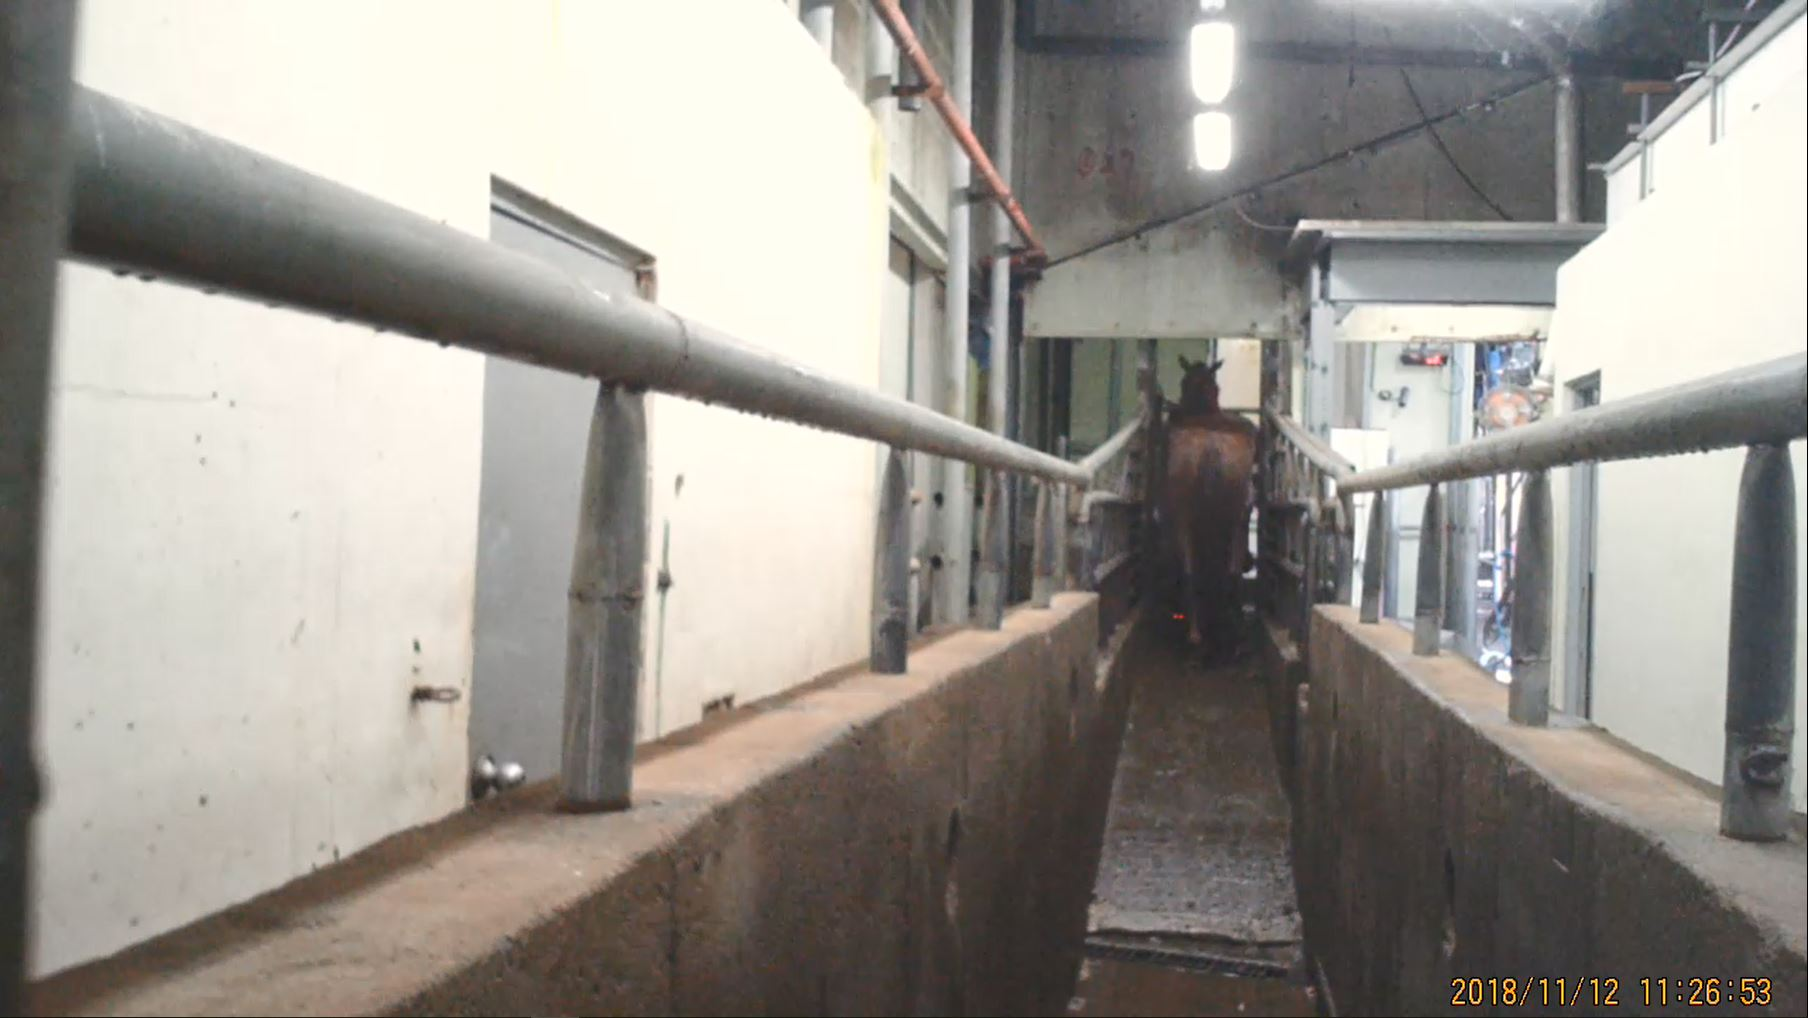 Horse in a slaughter chute, just before entering the kill box.